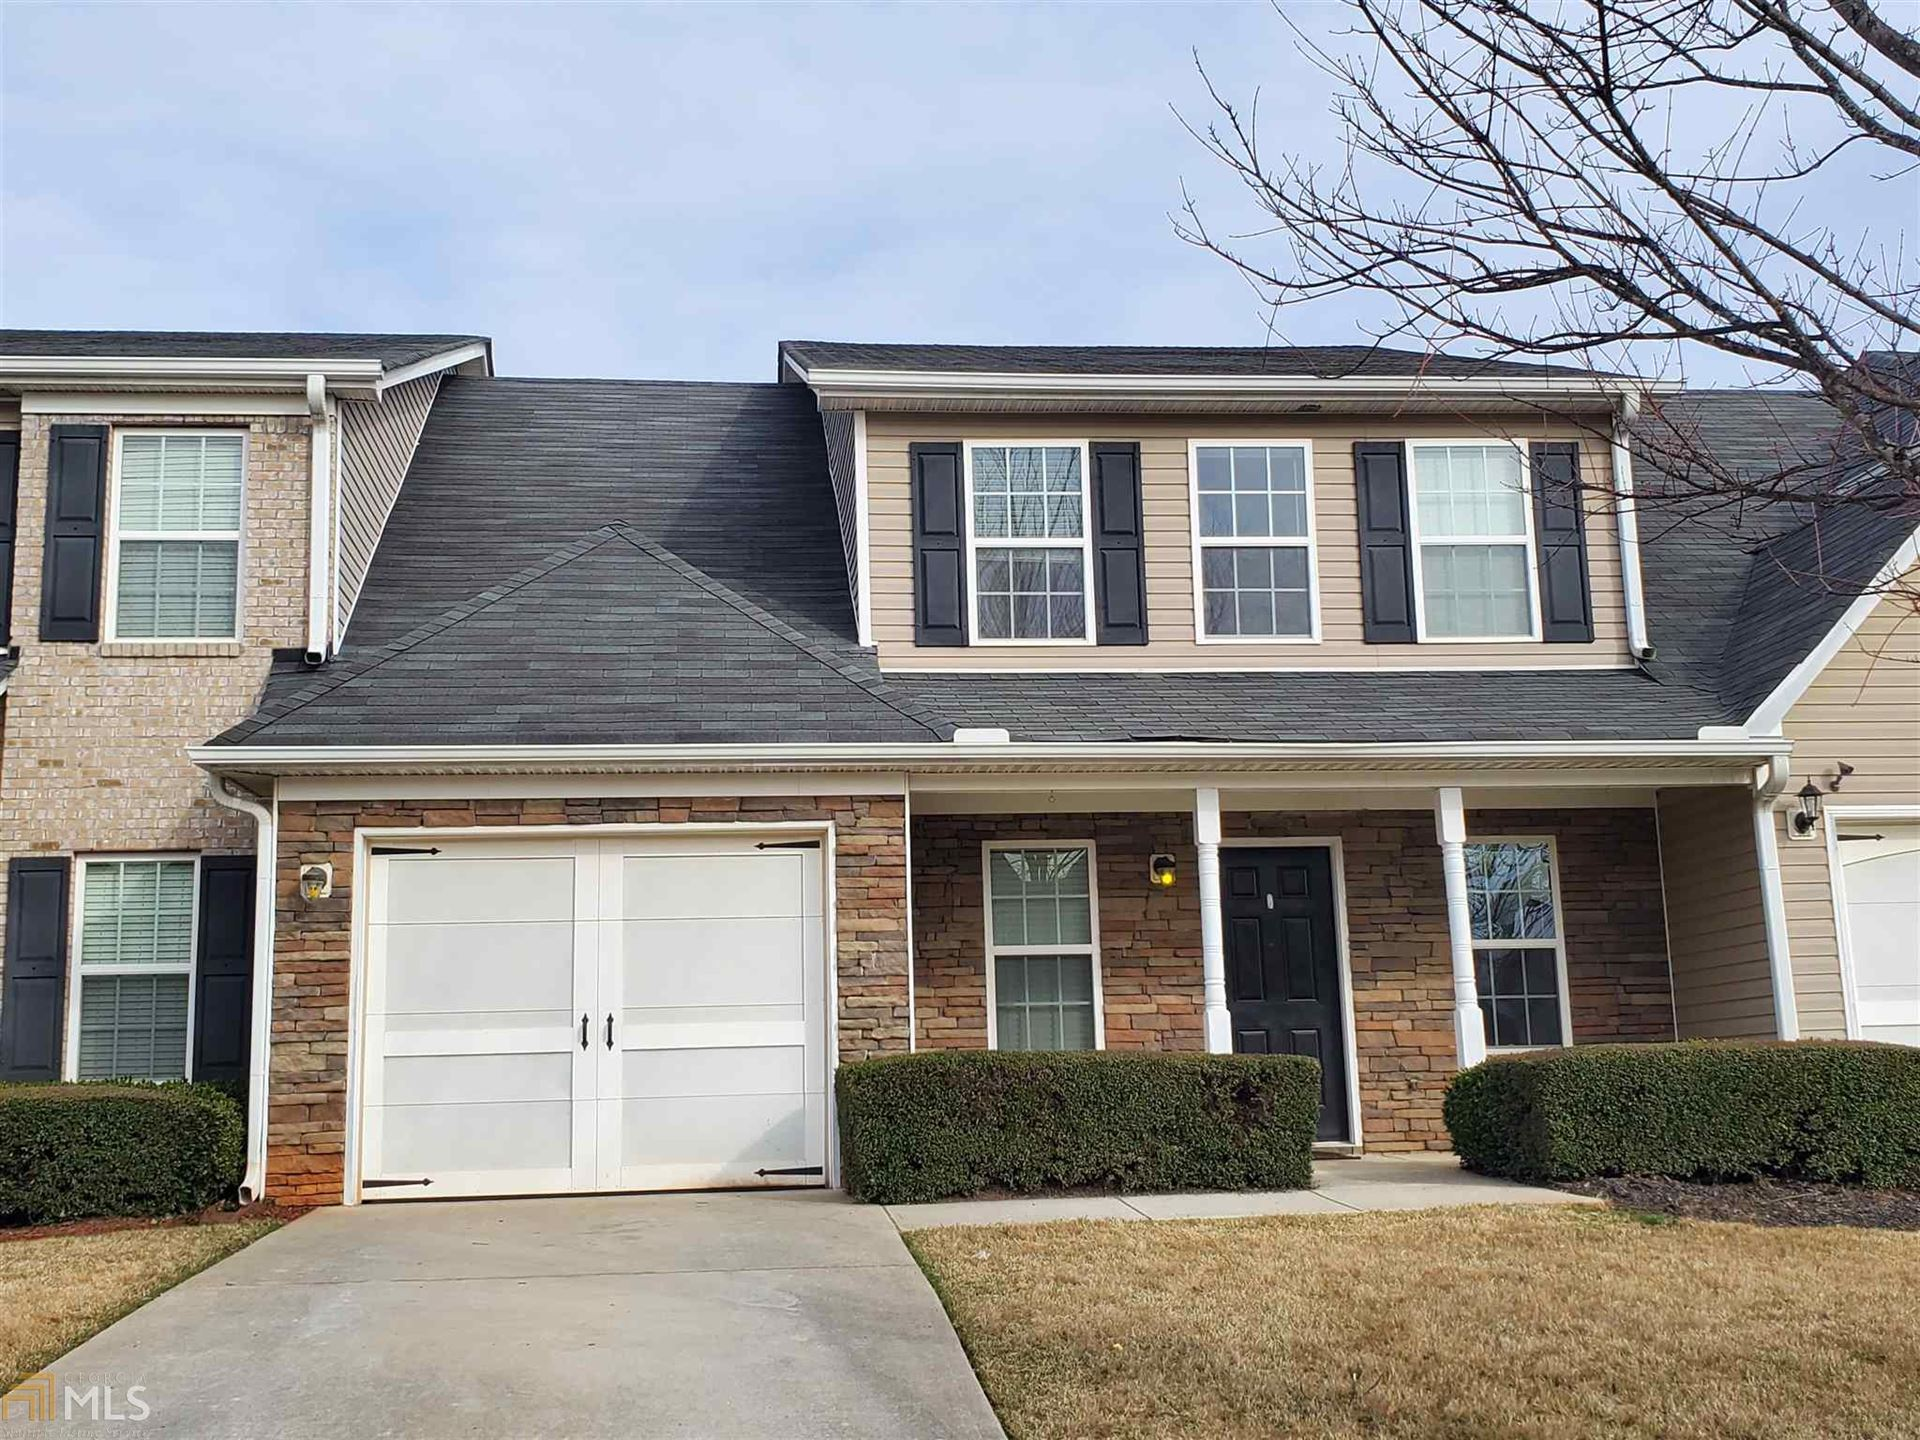 4015 Village Run Dr, McDonough, GA 30252 - MLS#: 8800794